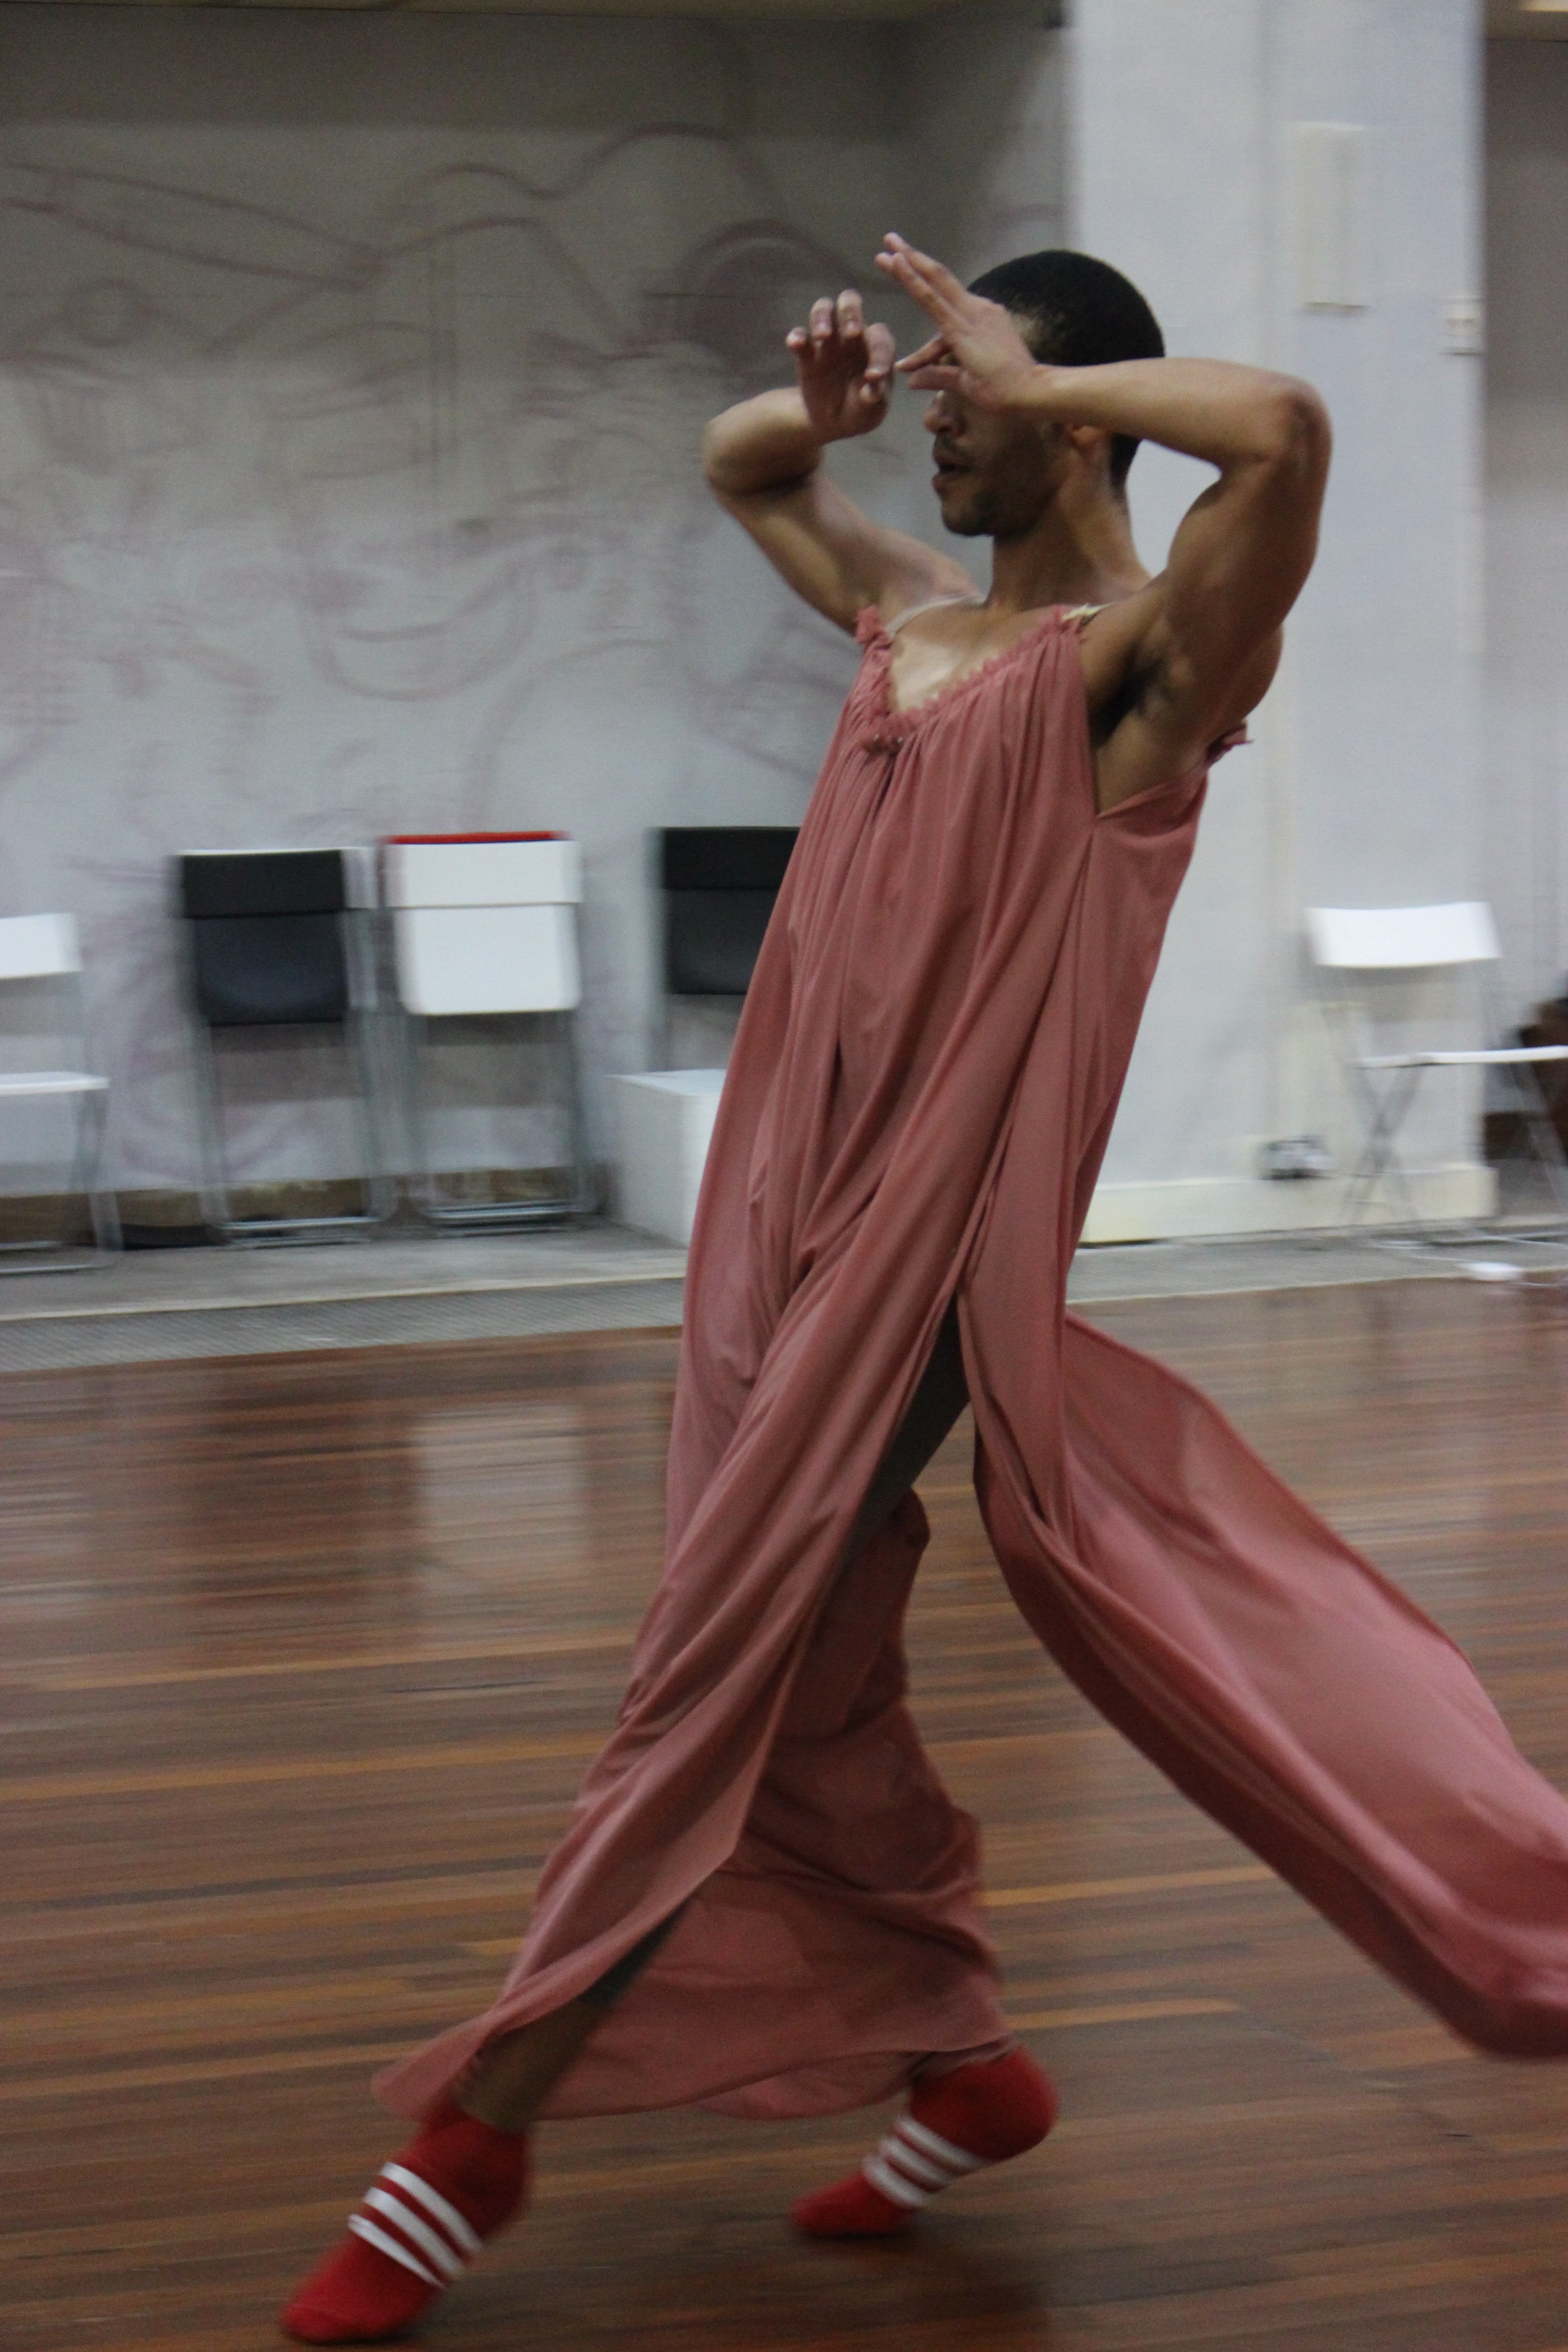 2018.<br> Harry works on a routine, choreographed with Roseanna, that expresses elation, freedom, and goodwill. Roseanna choreographed their costumes into the dance as a central element, playing on the buoyancy of the chiffon to amplify the lift of the jumps, and using the floating and fluttering corners of the dress to heighten the flowing quality of the motion.